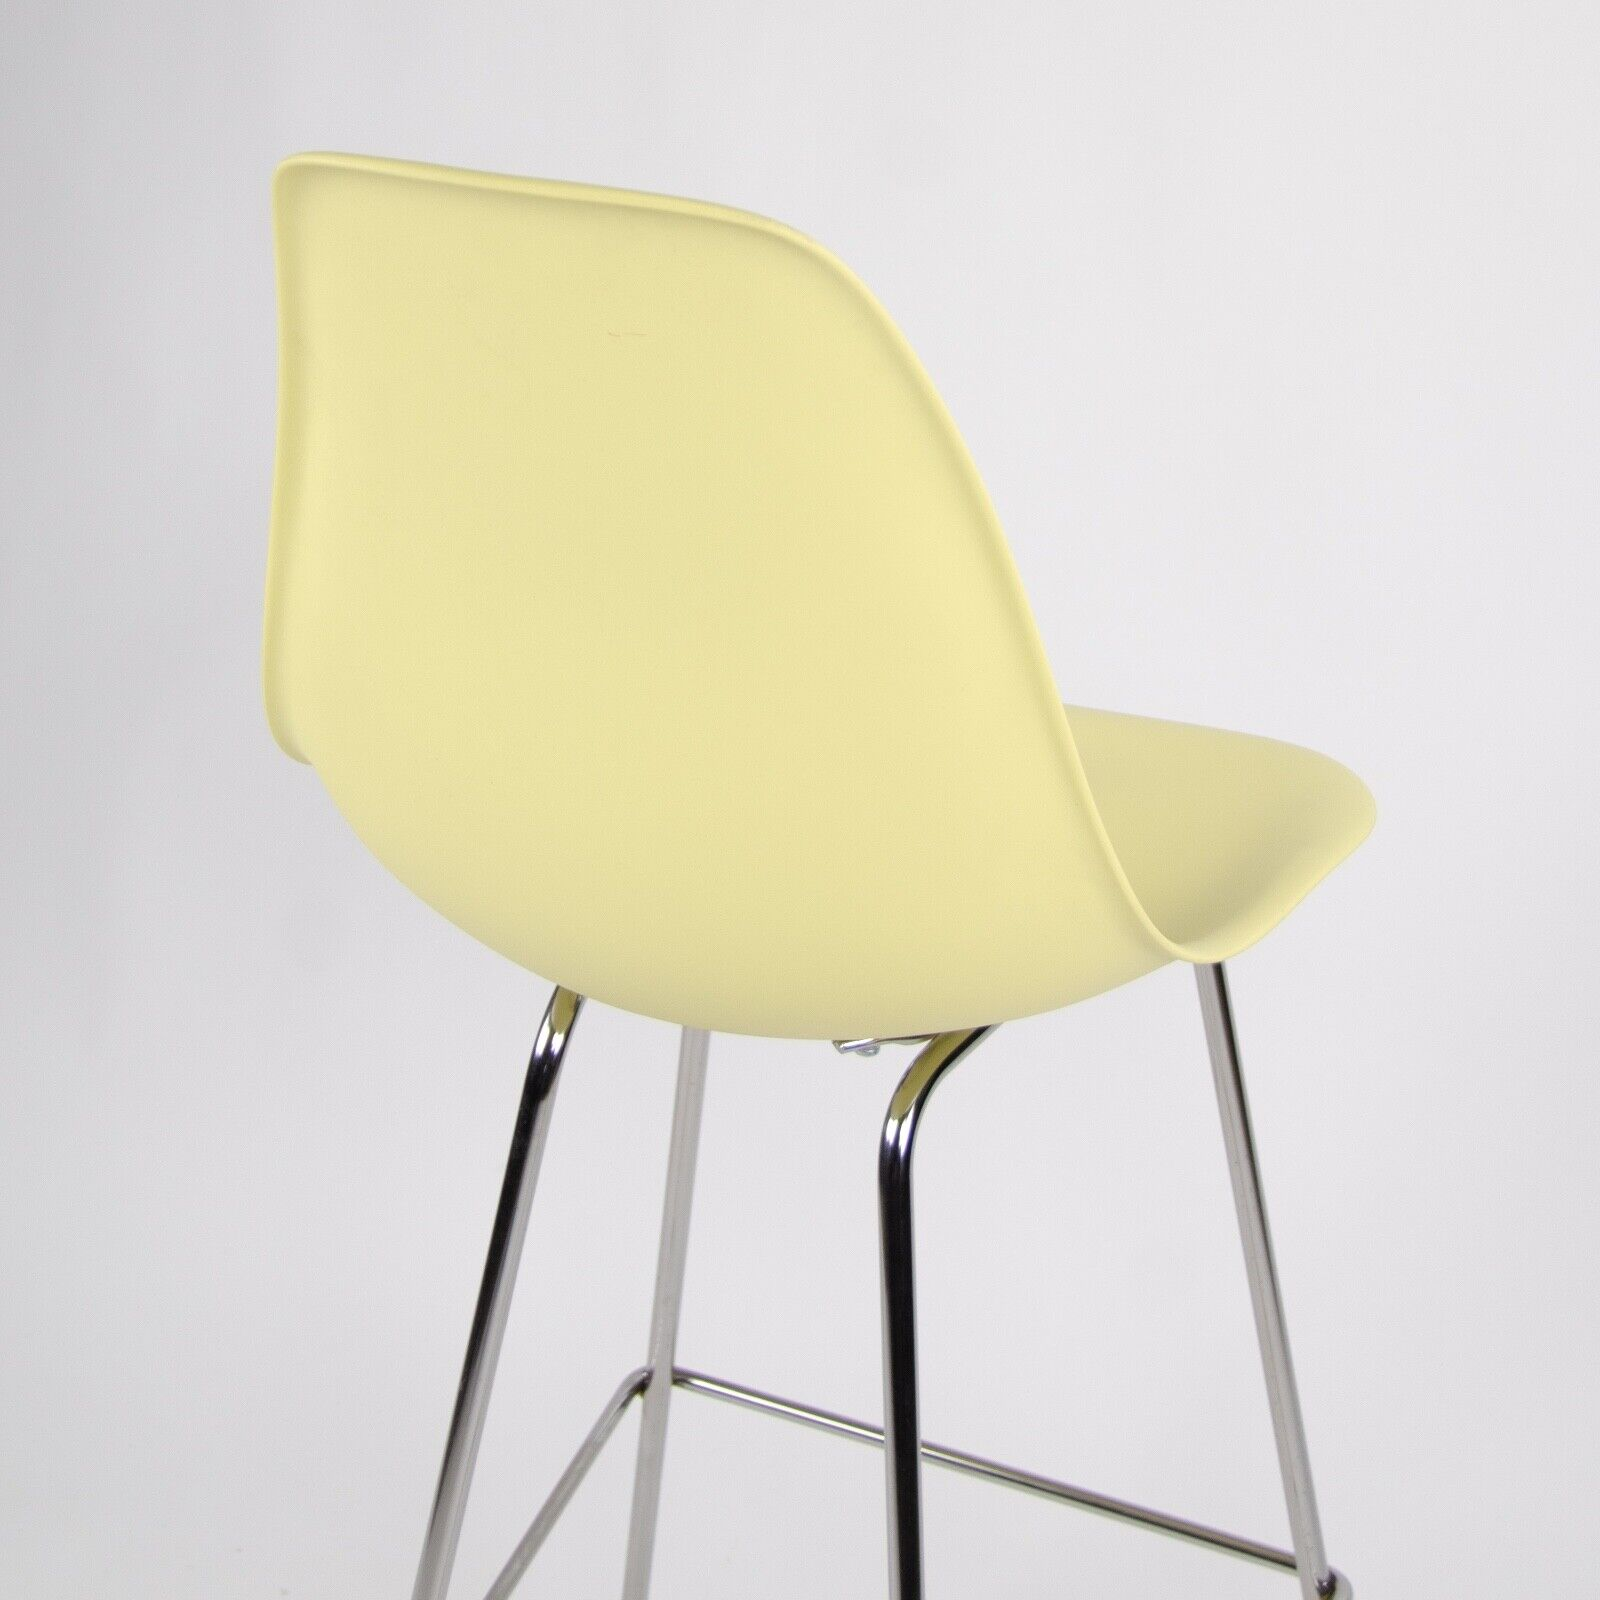 Herman Miller Shell Chair Details About New 2016 Herman Miller Eames Plastic Side Shell Chair Barstool Pale Yellow 4x